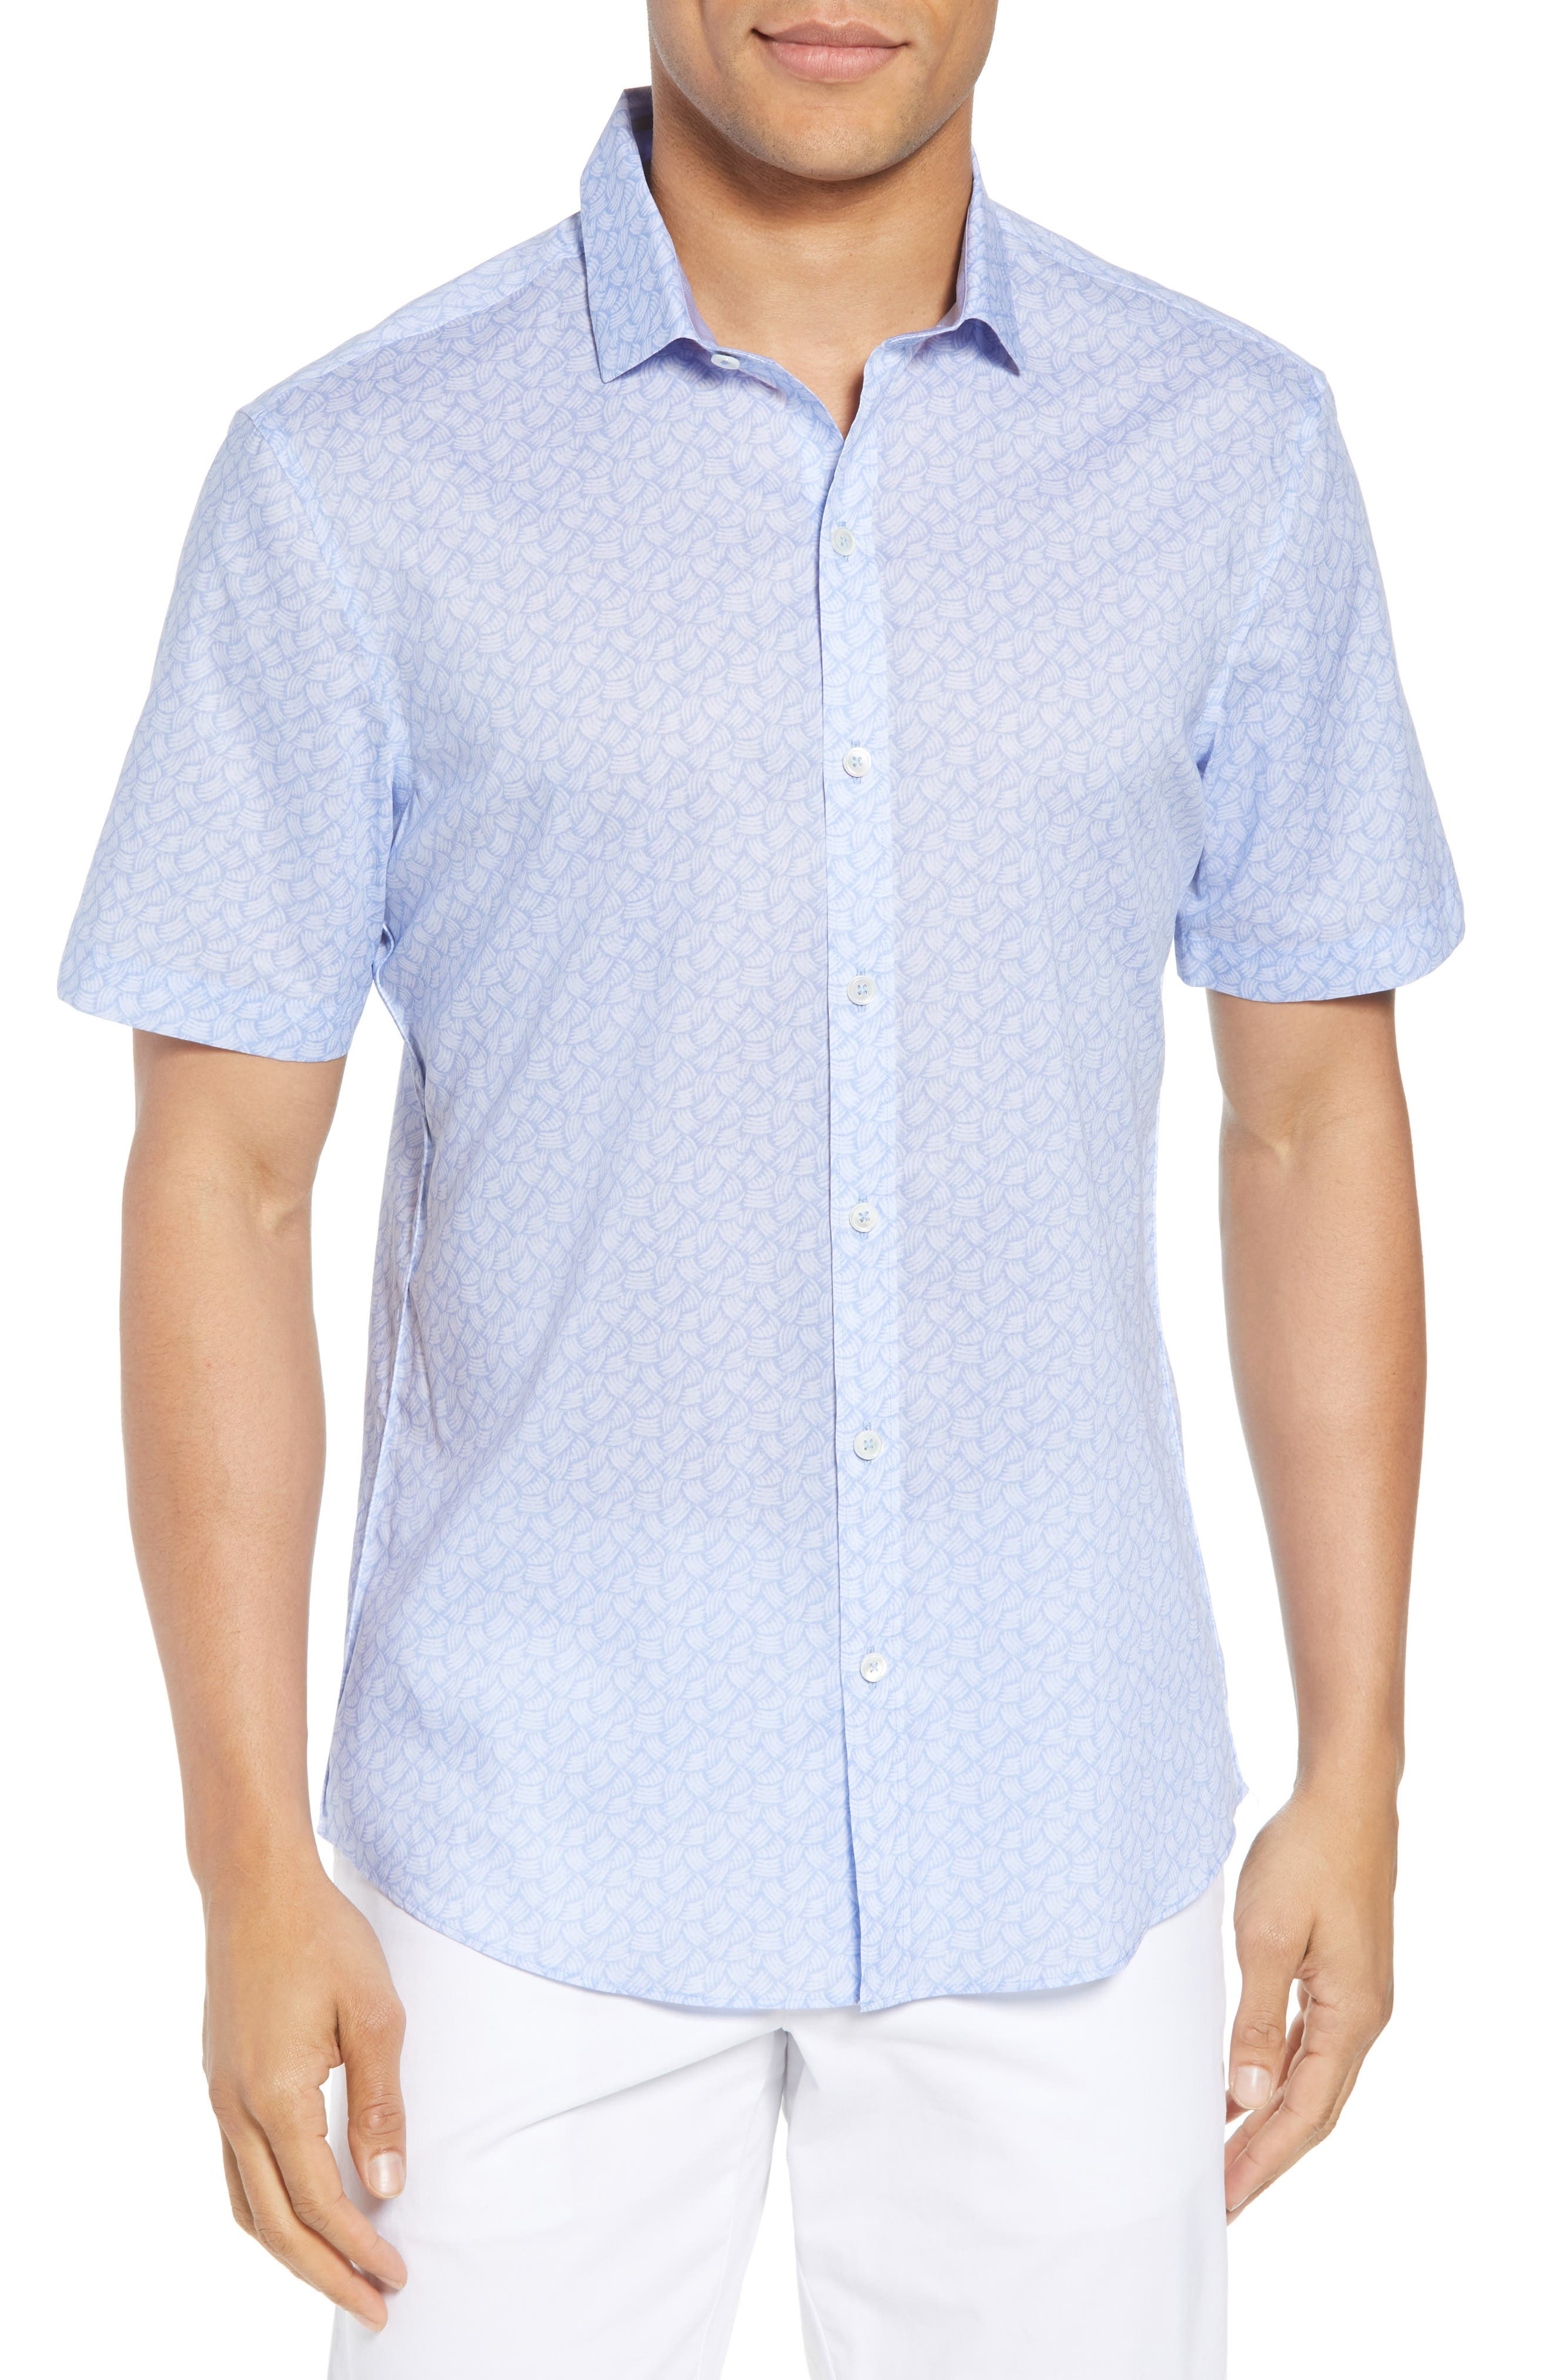 Garrett Trim Fit Sport Shirt,                         Main,                         color, BLUE